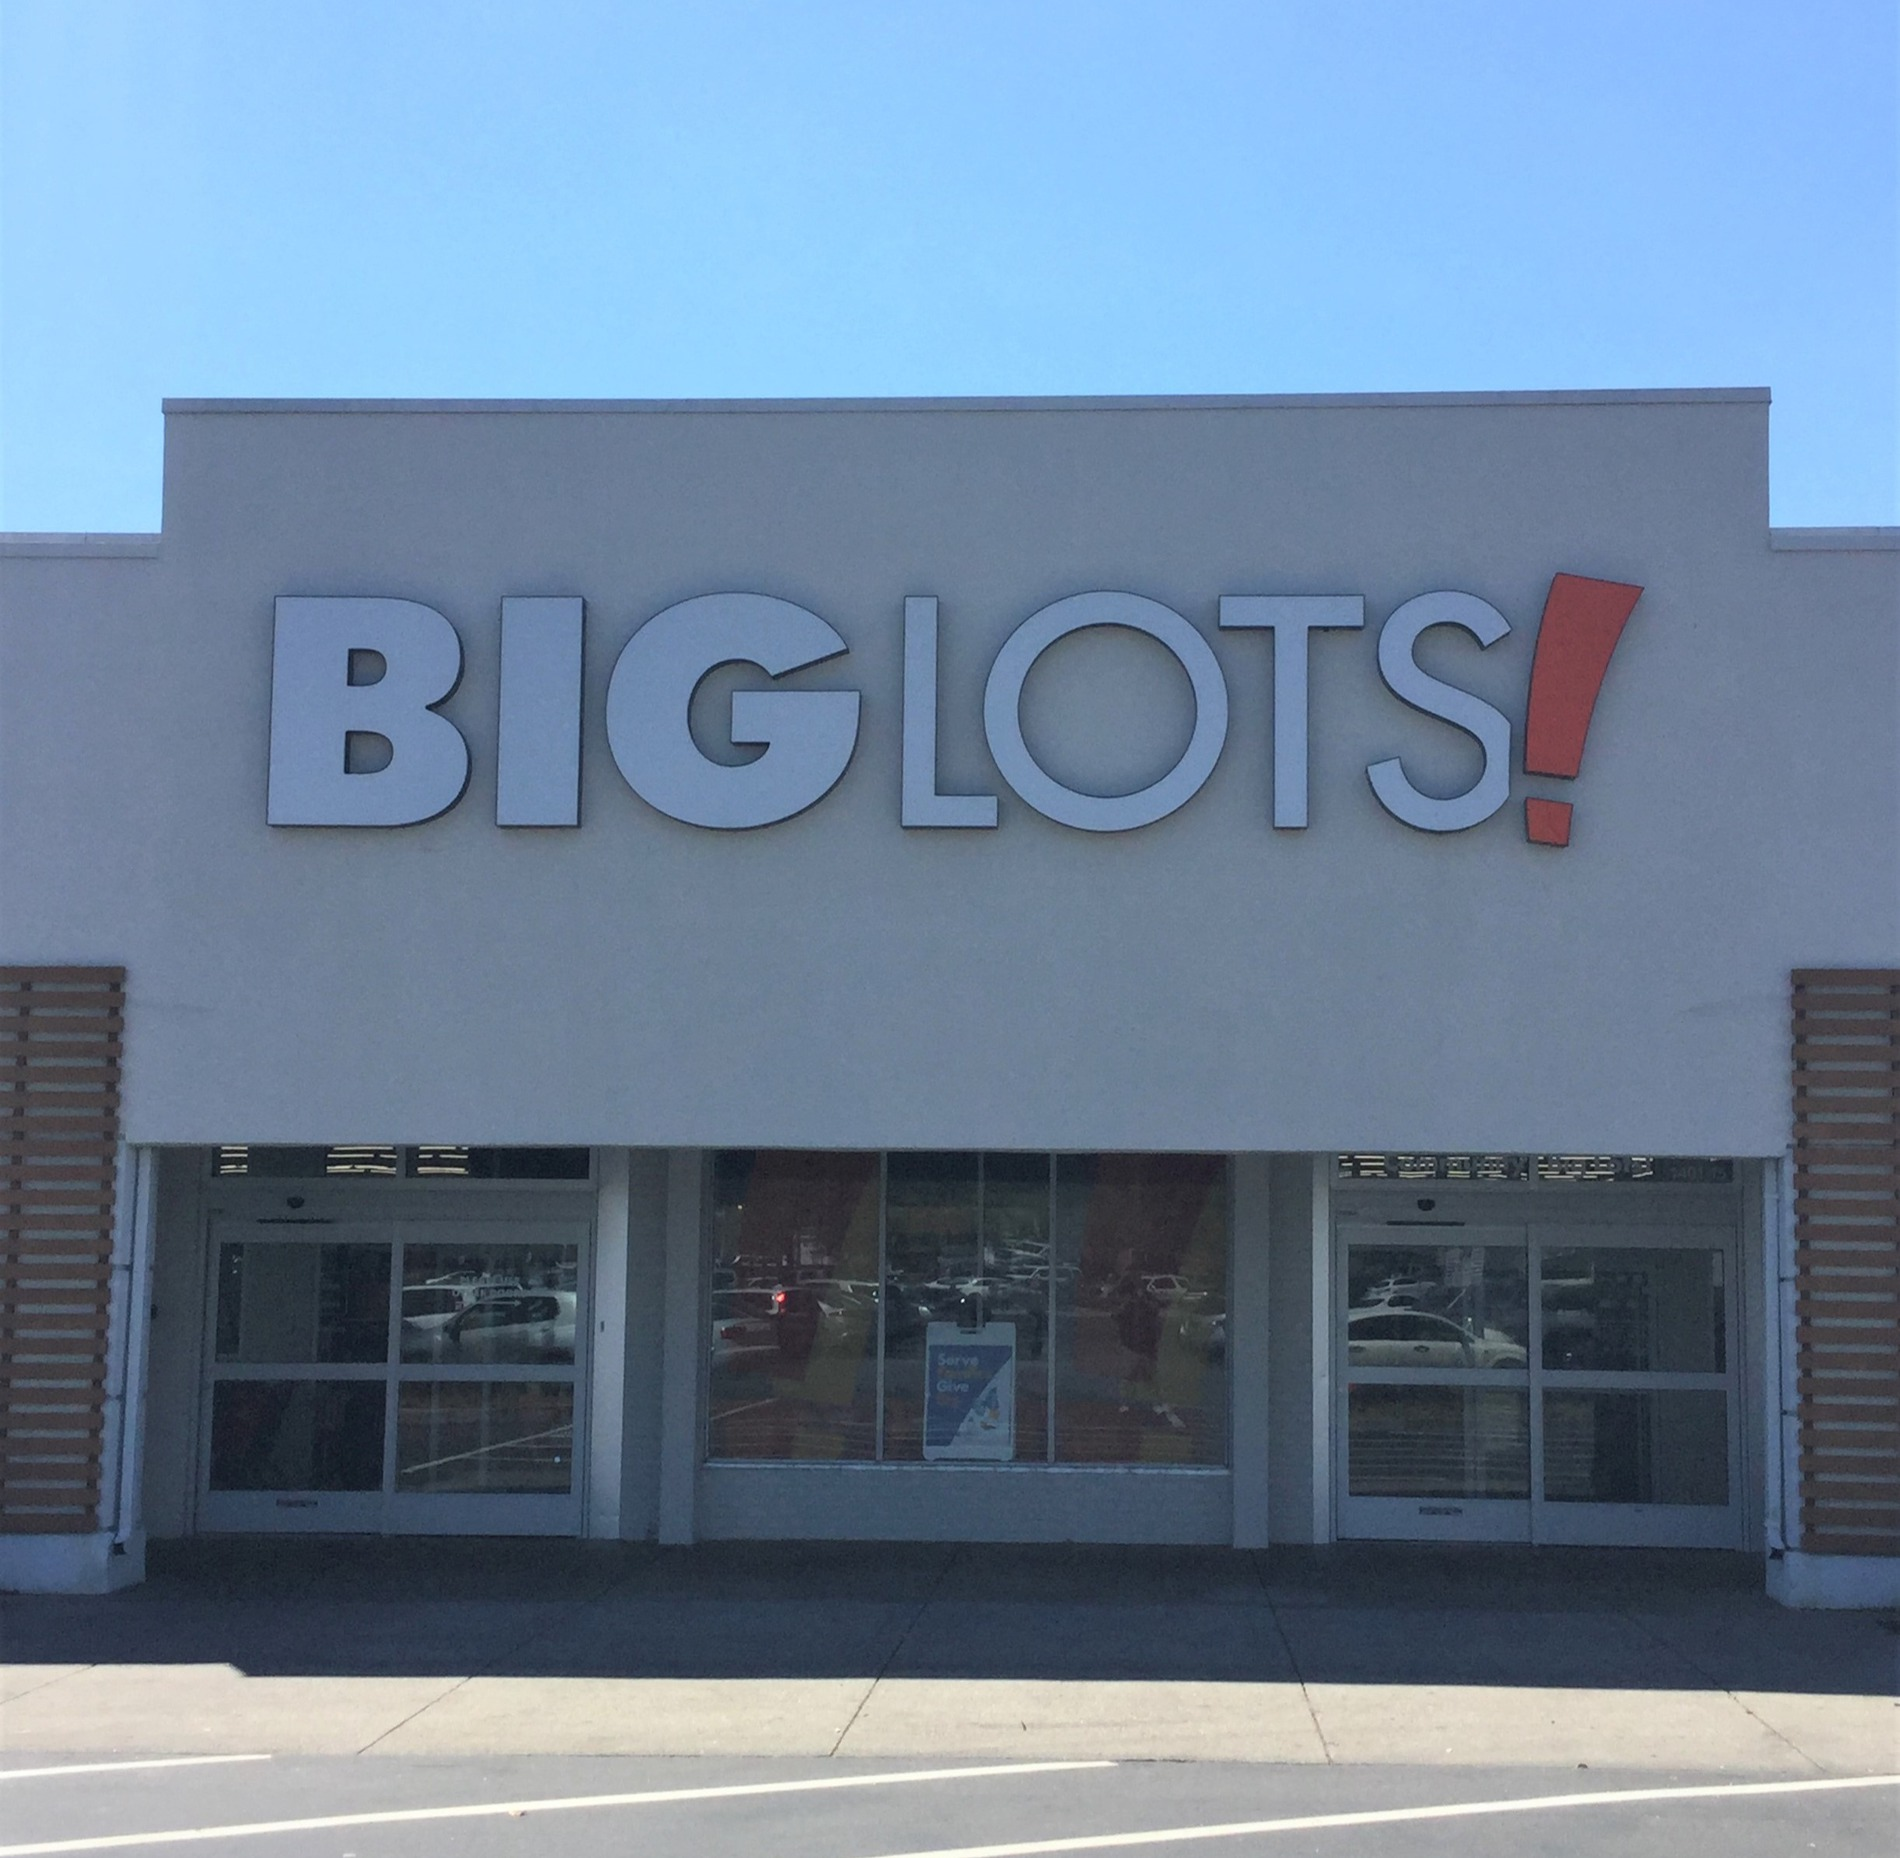 Charleston, SC Big Lots Store #117